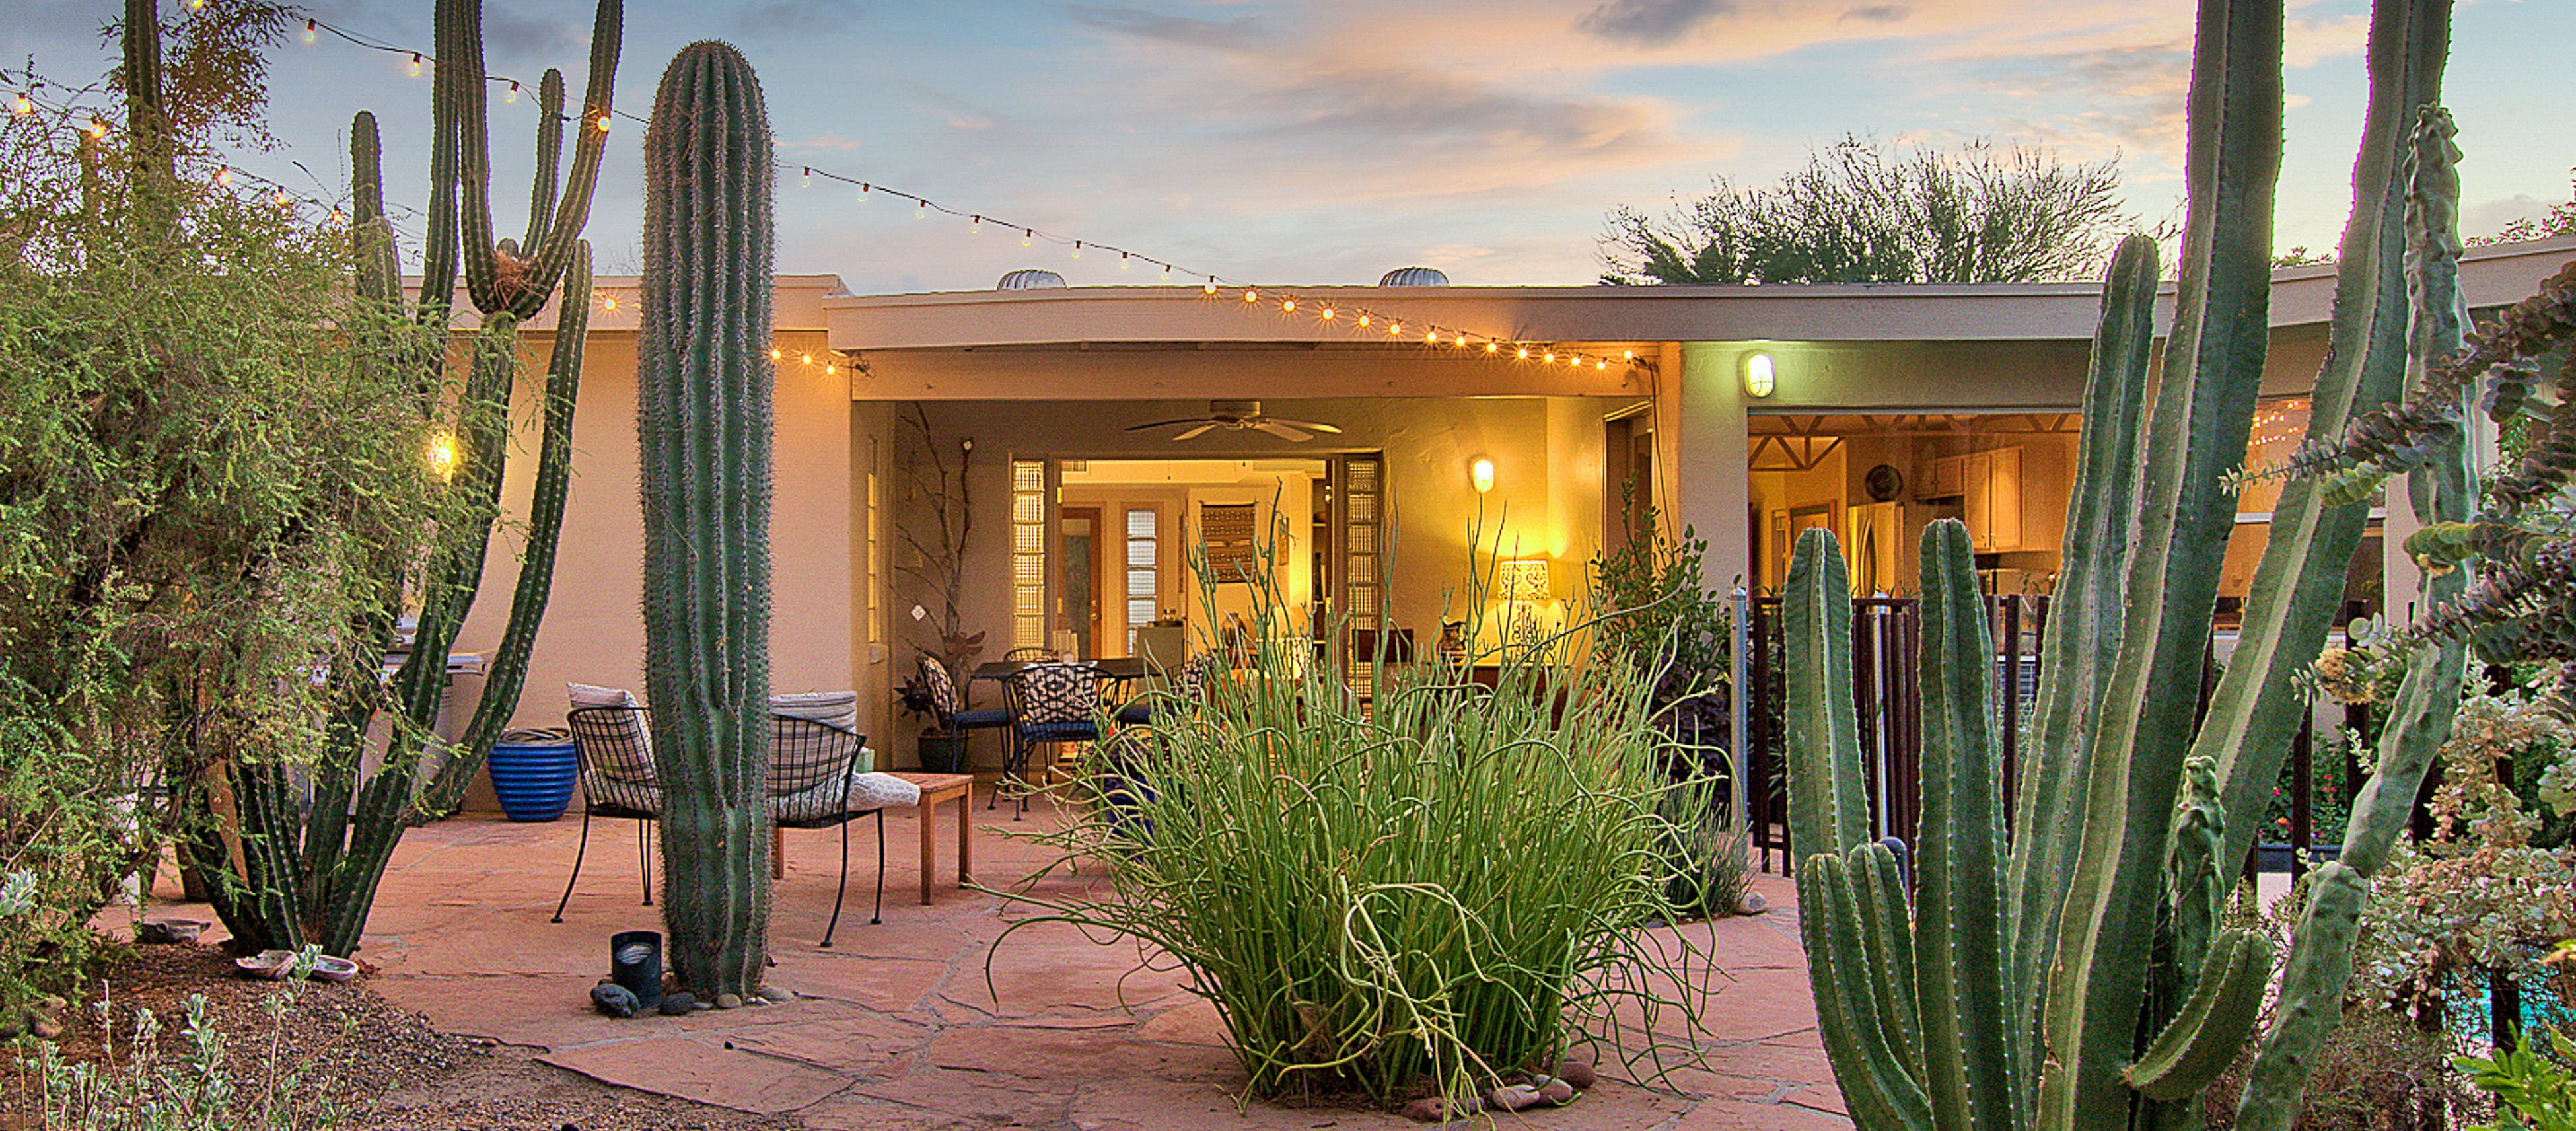 large cacti create a desert oasis at this scottsdale, az vacation home